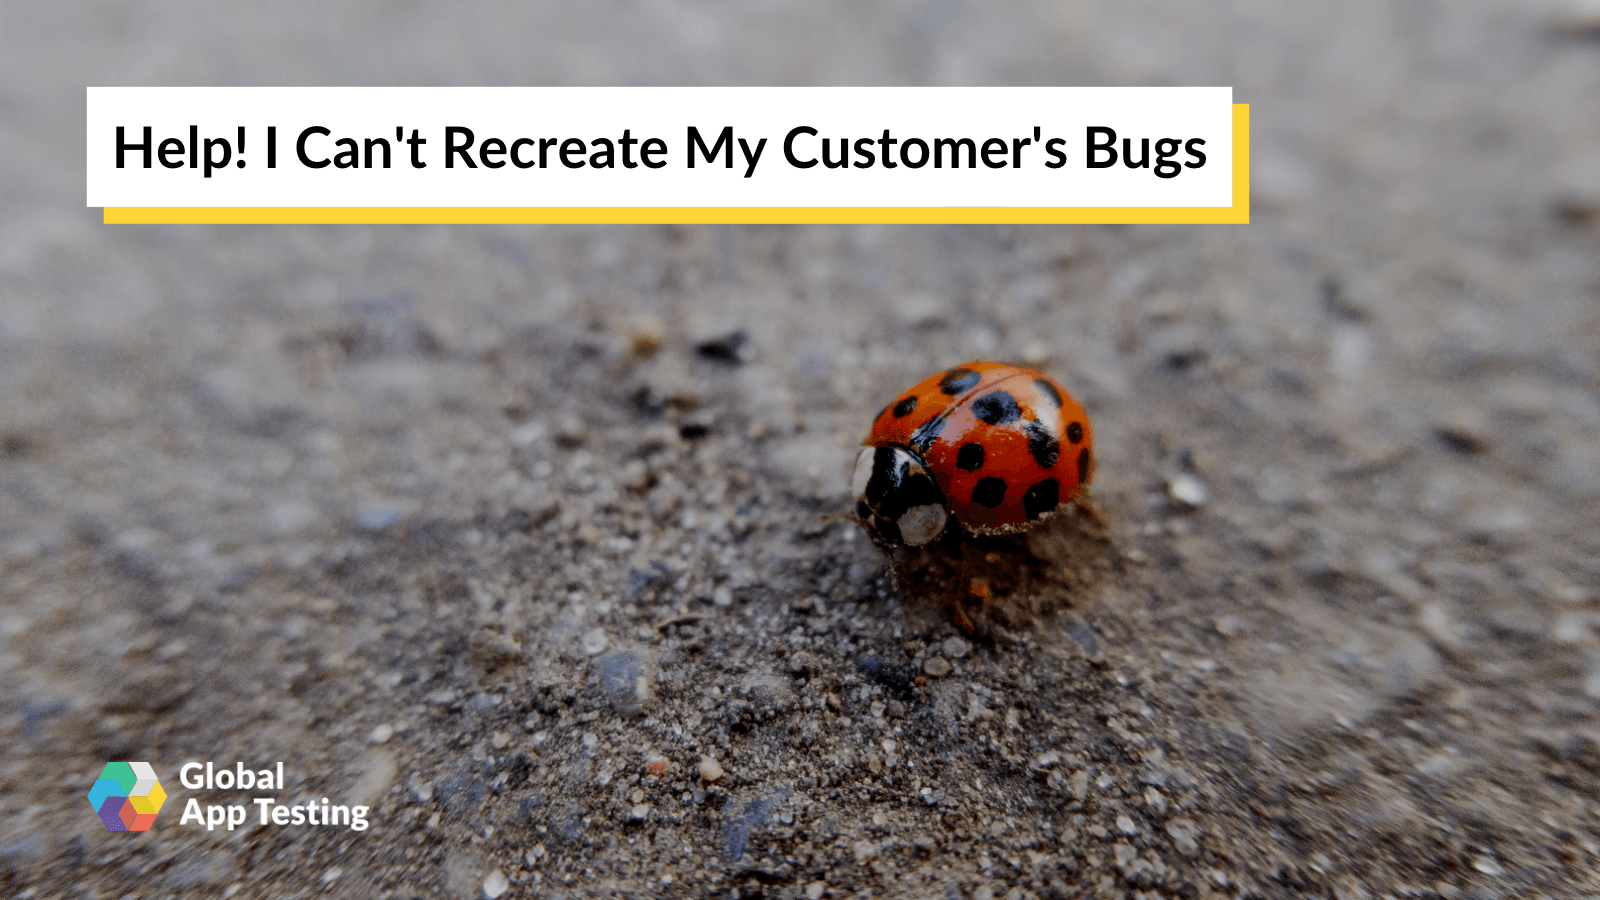 Help! I Can't Recreate My Customer's Bugs